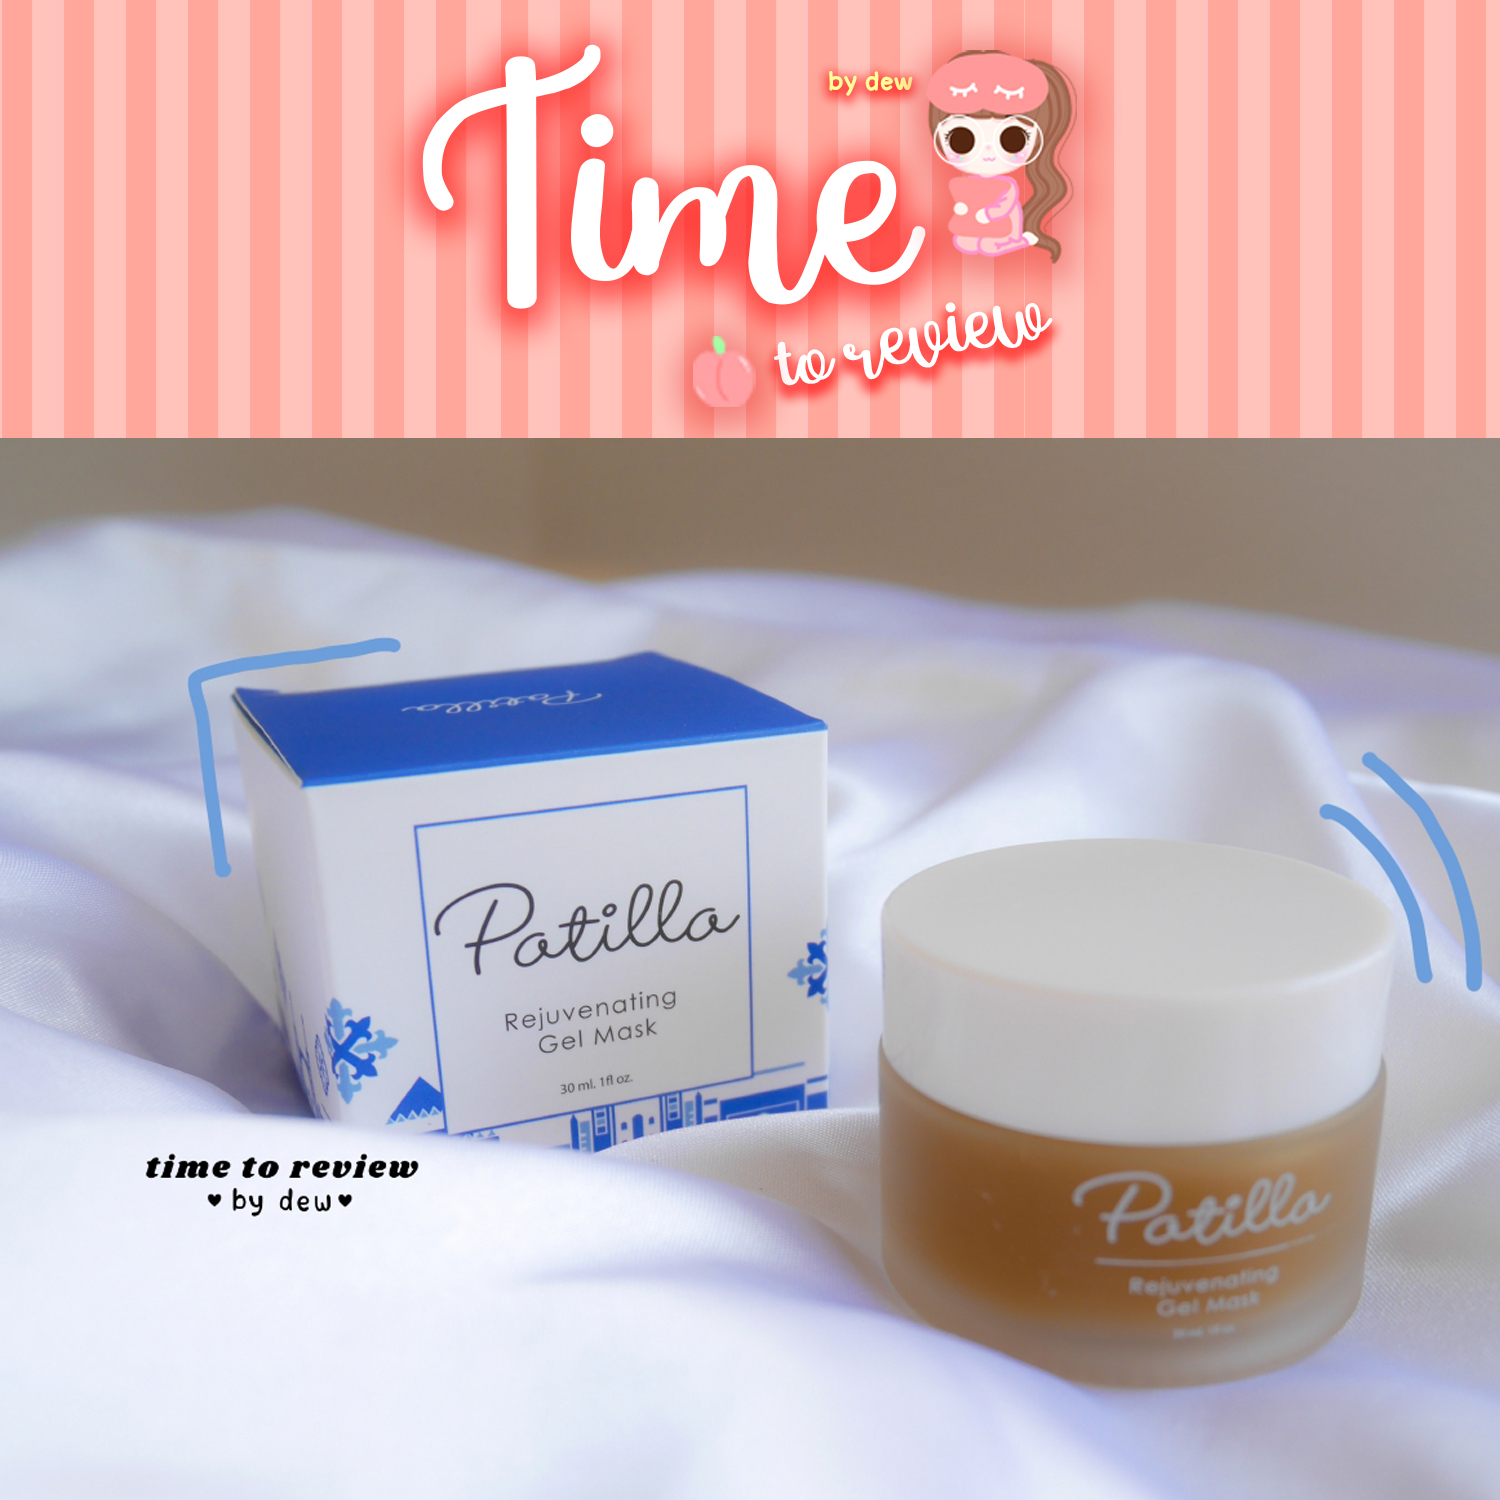 [Review] Patilla Rejuvenating Gel Mask